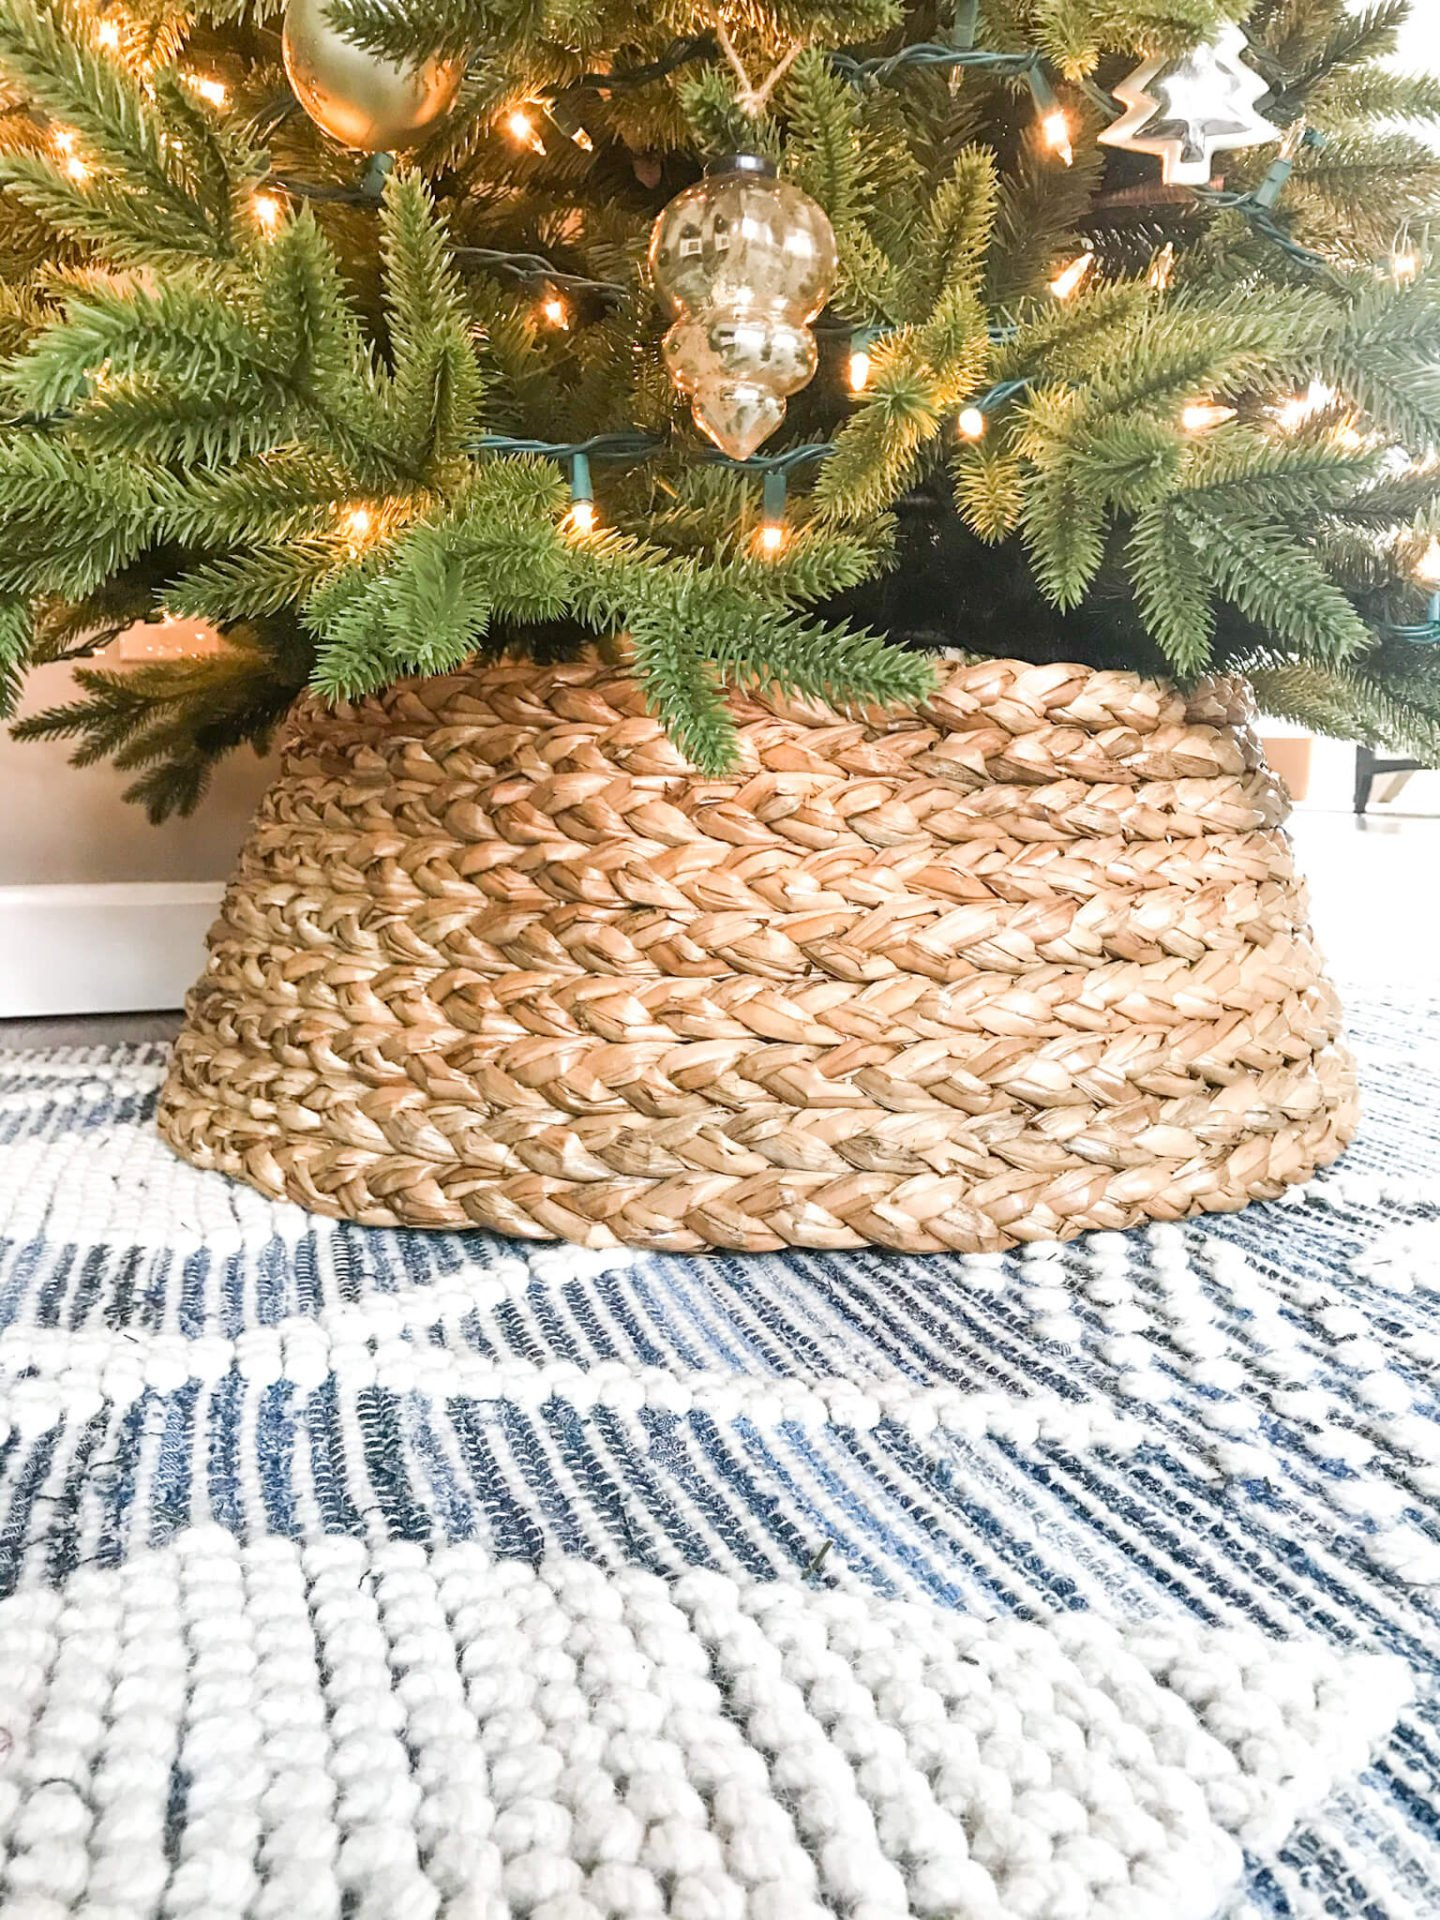 Christmas trees is the number one item on my list of what to buy for Christmas decorations. This basket tree collar makes a great addition to any full-sized tree.